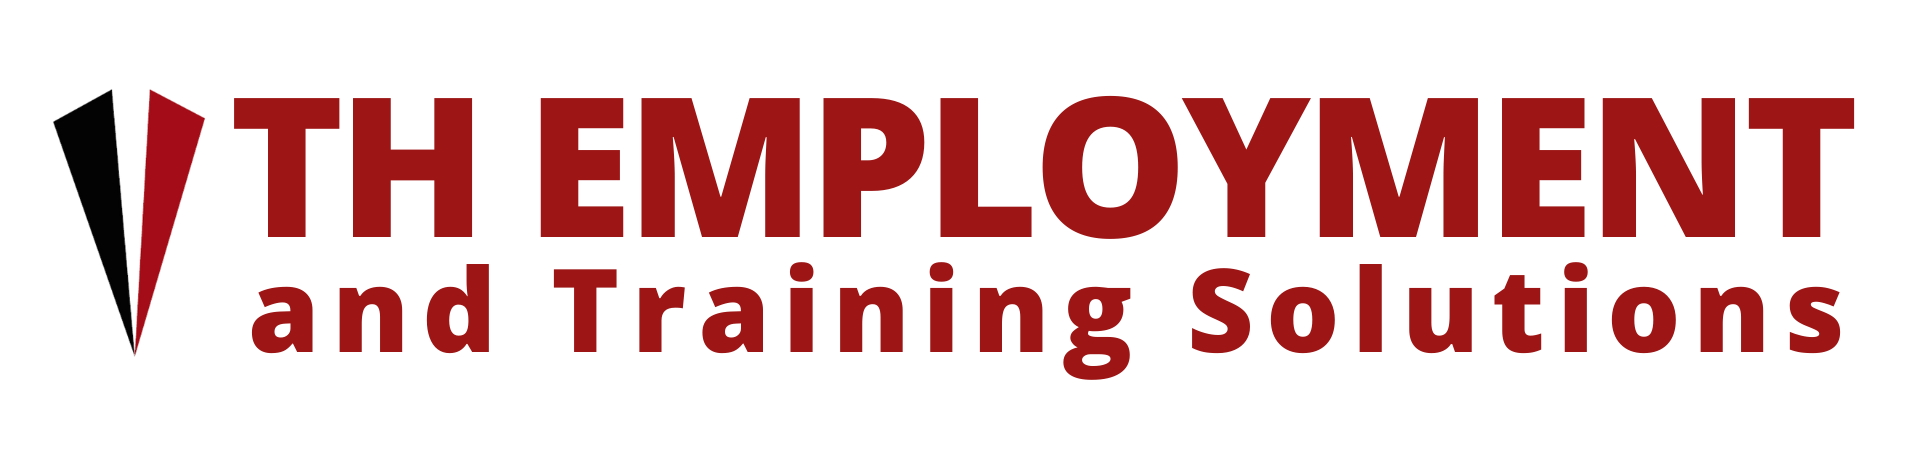 TH Employment and Training Solutions